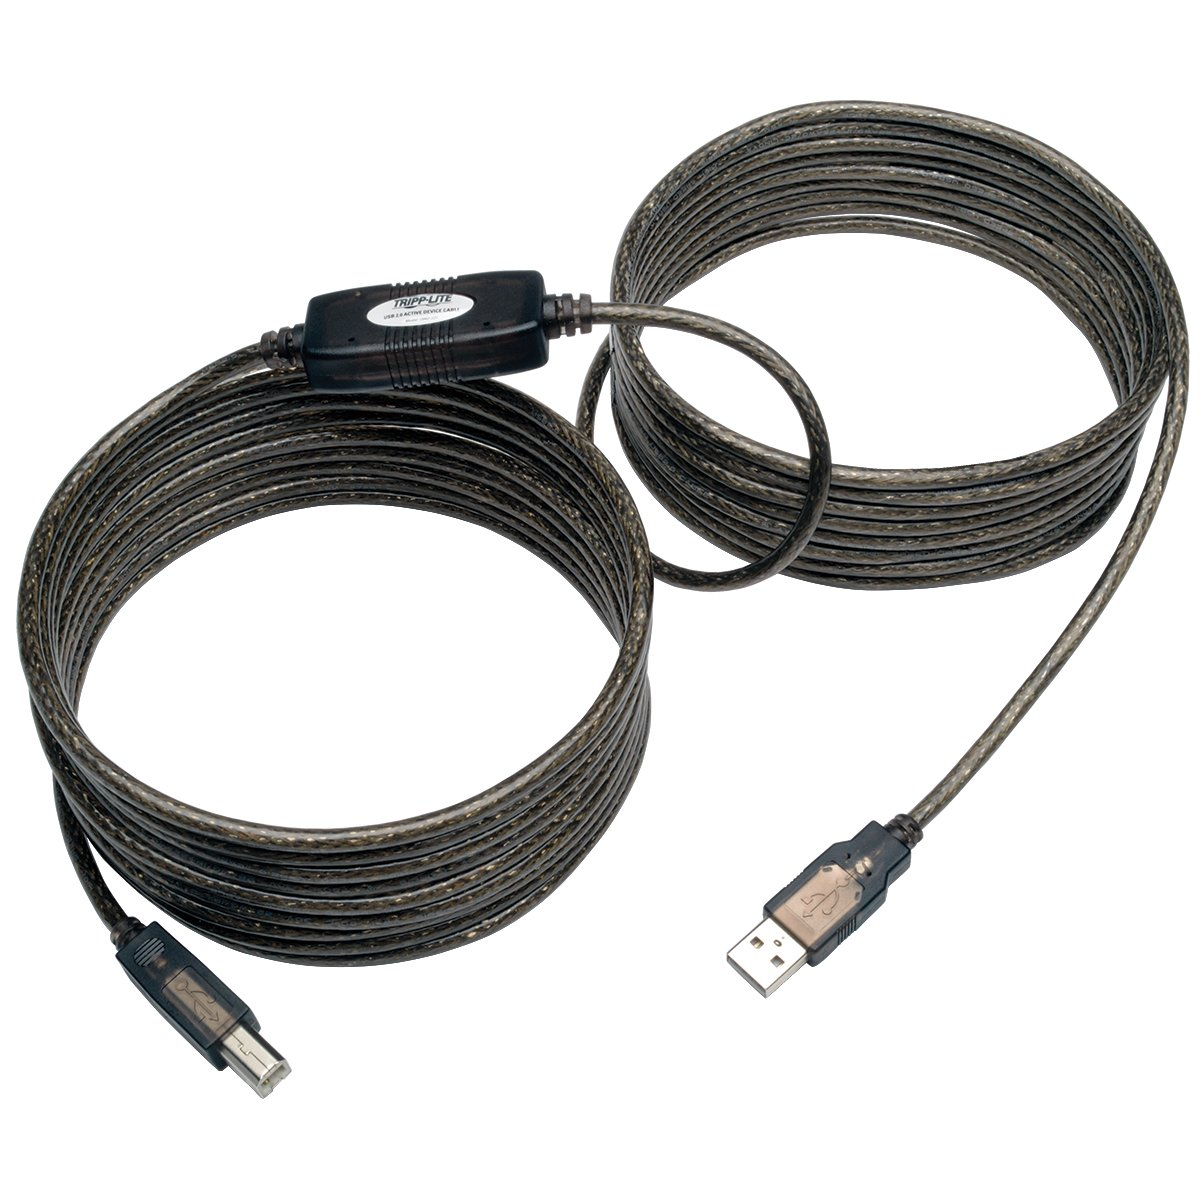 Tripp Lite Cable Repetidor Activo USB 2.0 de Alta Velocidad A/B (M/M), 7.62 m [25 pies] - Cable USB (7.62 m [25 pies], 8 m, USB A, USB B, 2.0, Male Connector/Male